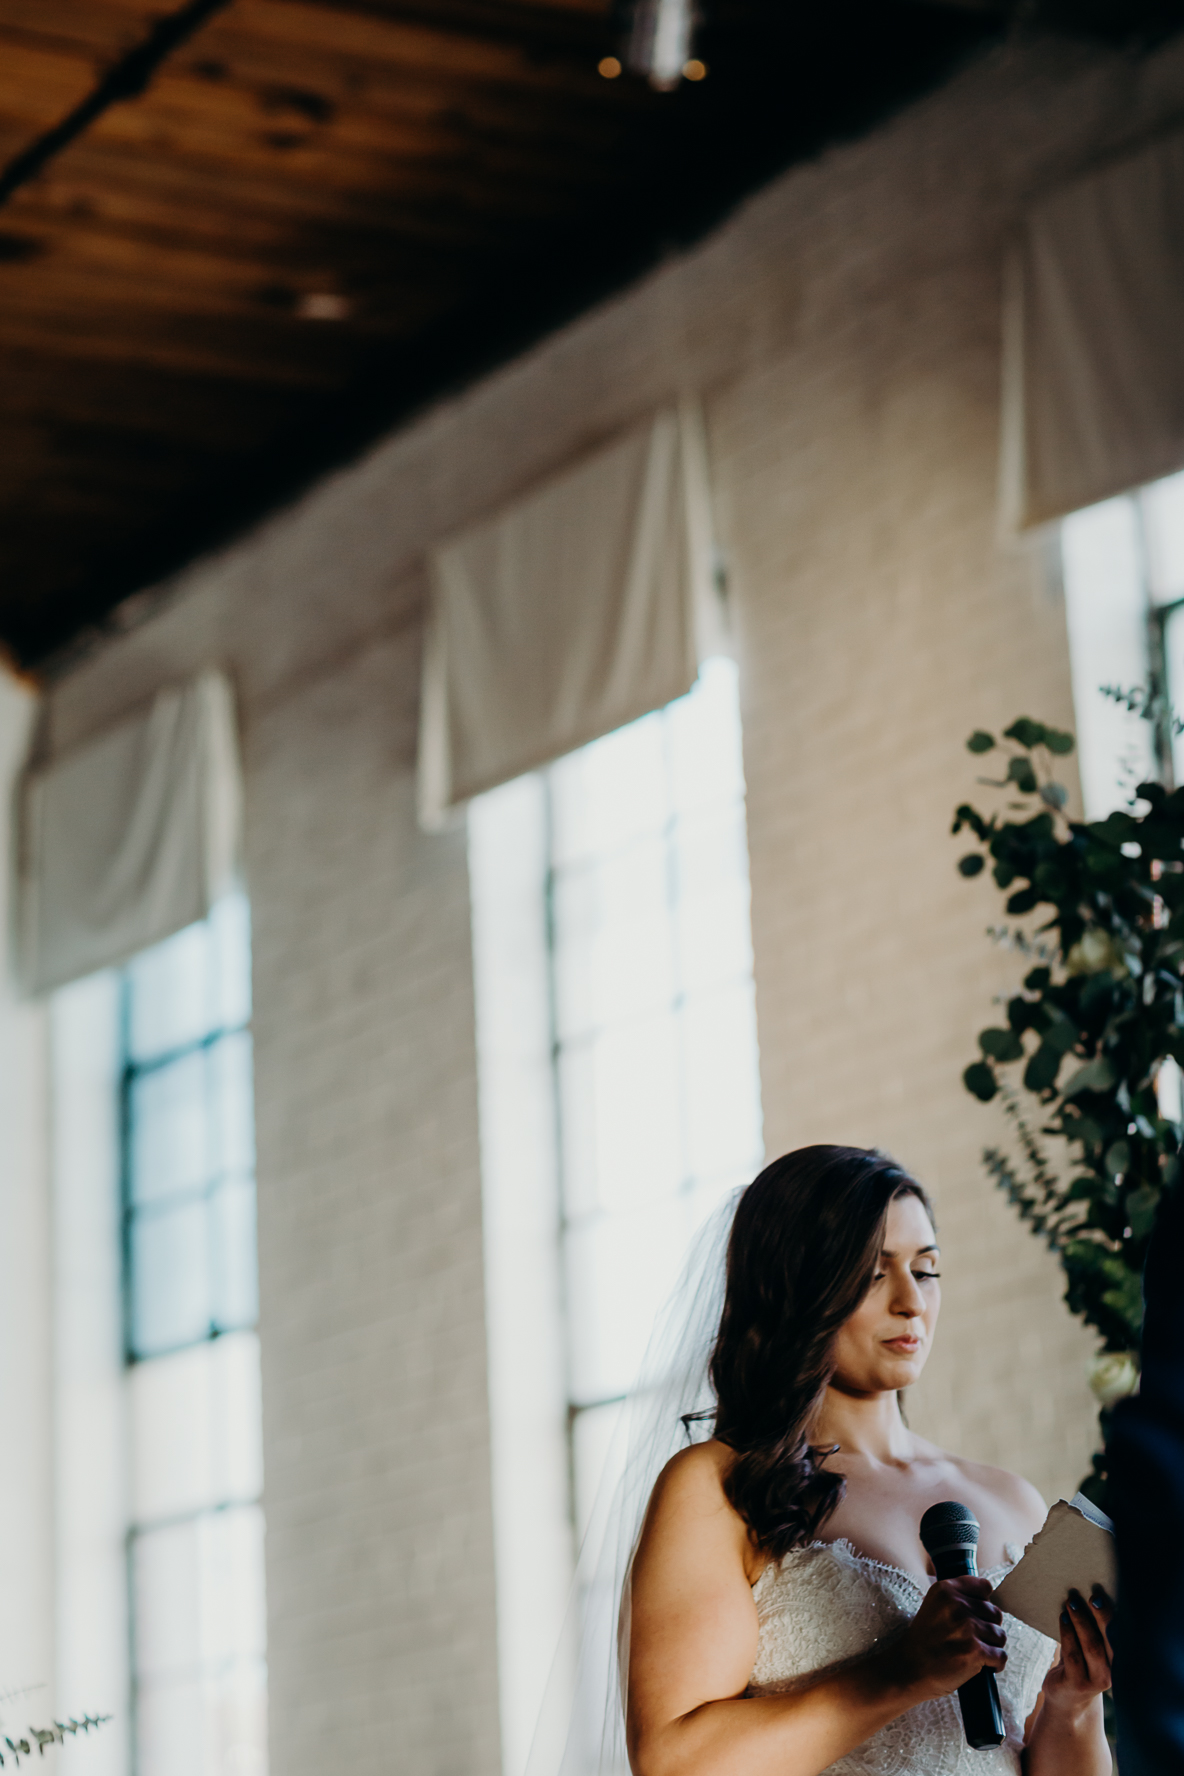 Gianna Keiko Atlanta NYC California Wedding Elopement Photographer_Sneak Peek-27.jpg